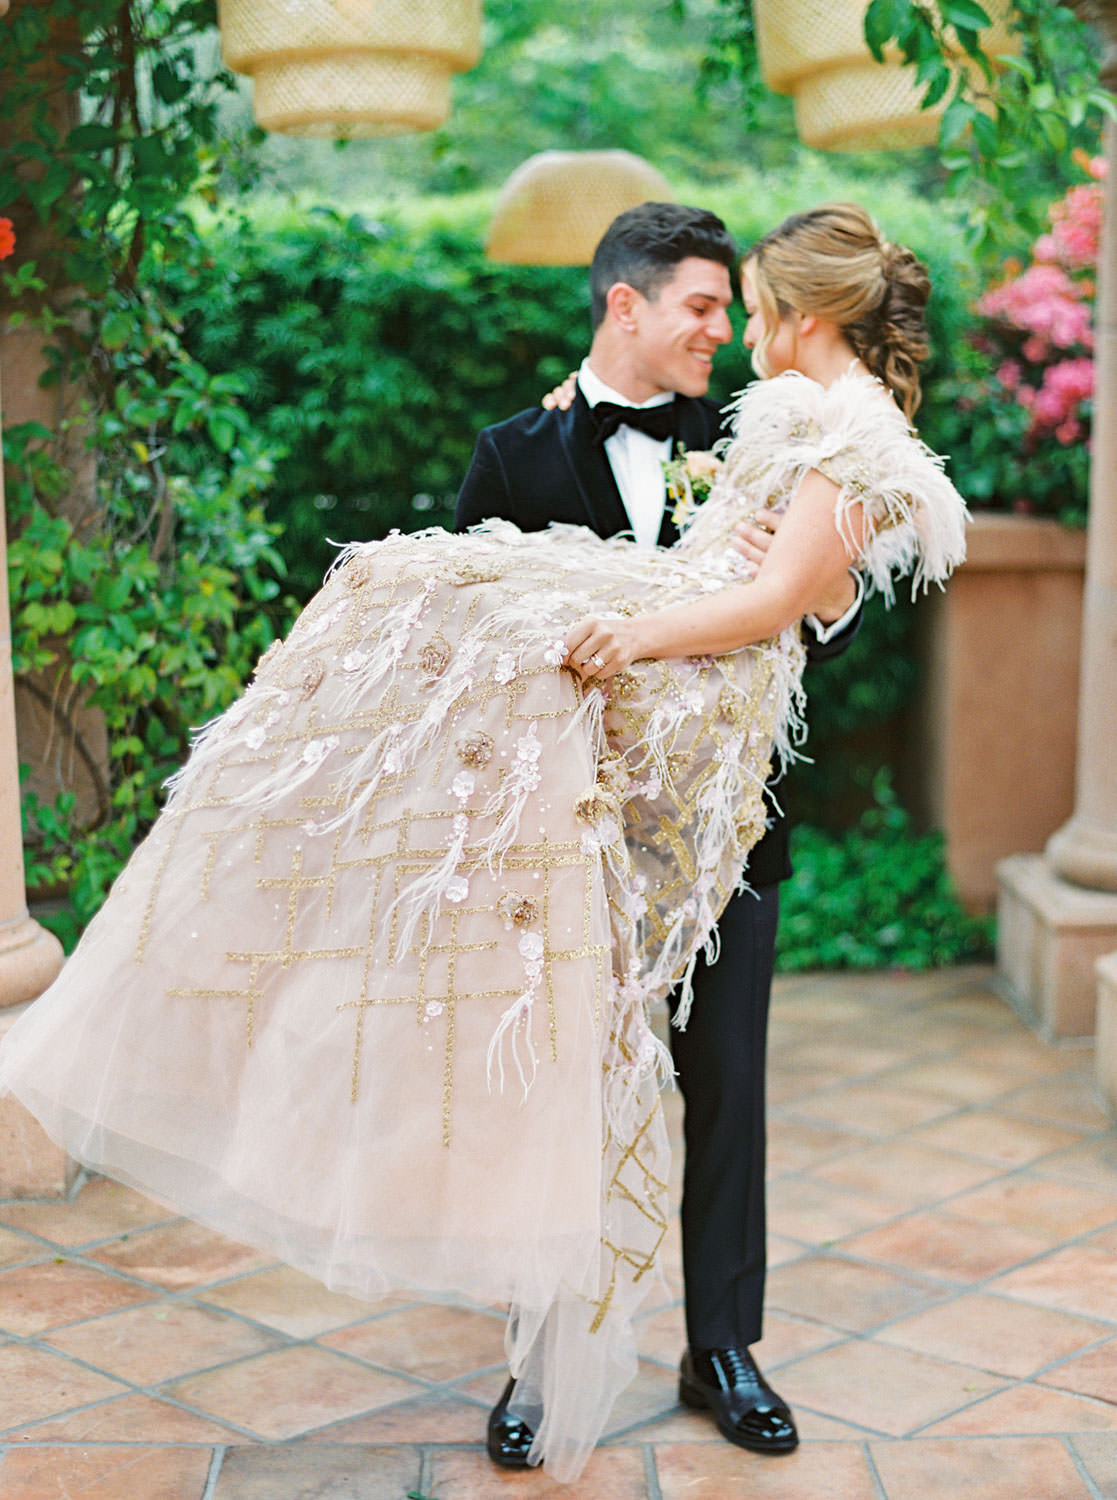 Groom in black velvet tuxedo carrying bride wearing a Marchesa couture gown with blush feathers, gold lines, and floral embellishments. Honey and Beekeeper Inspired Wedding at Rancho Valencia on film by Cavin Elizabeth Photography